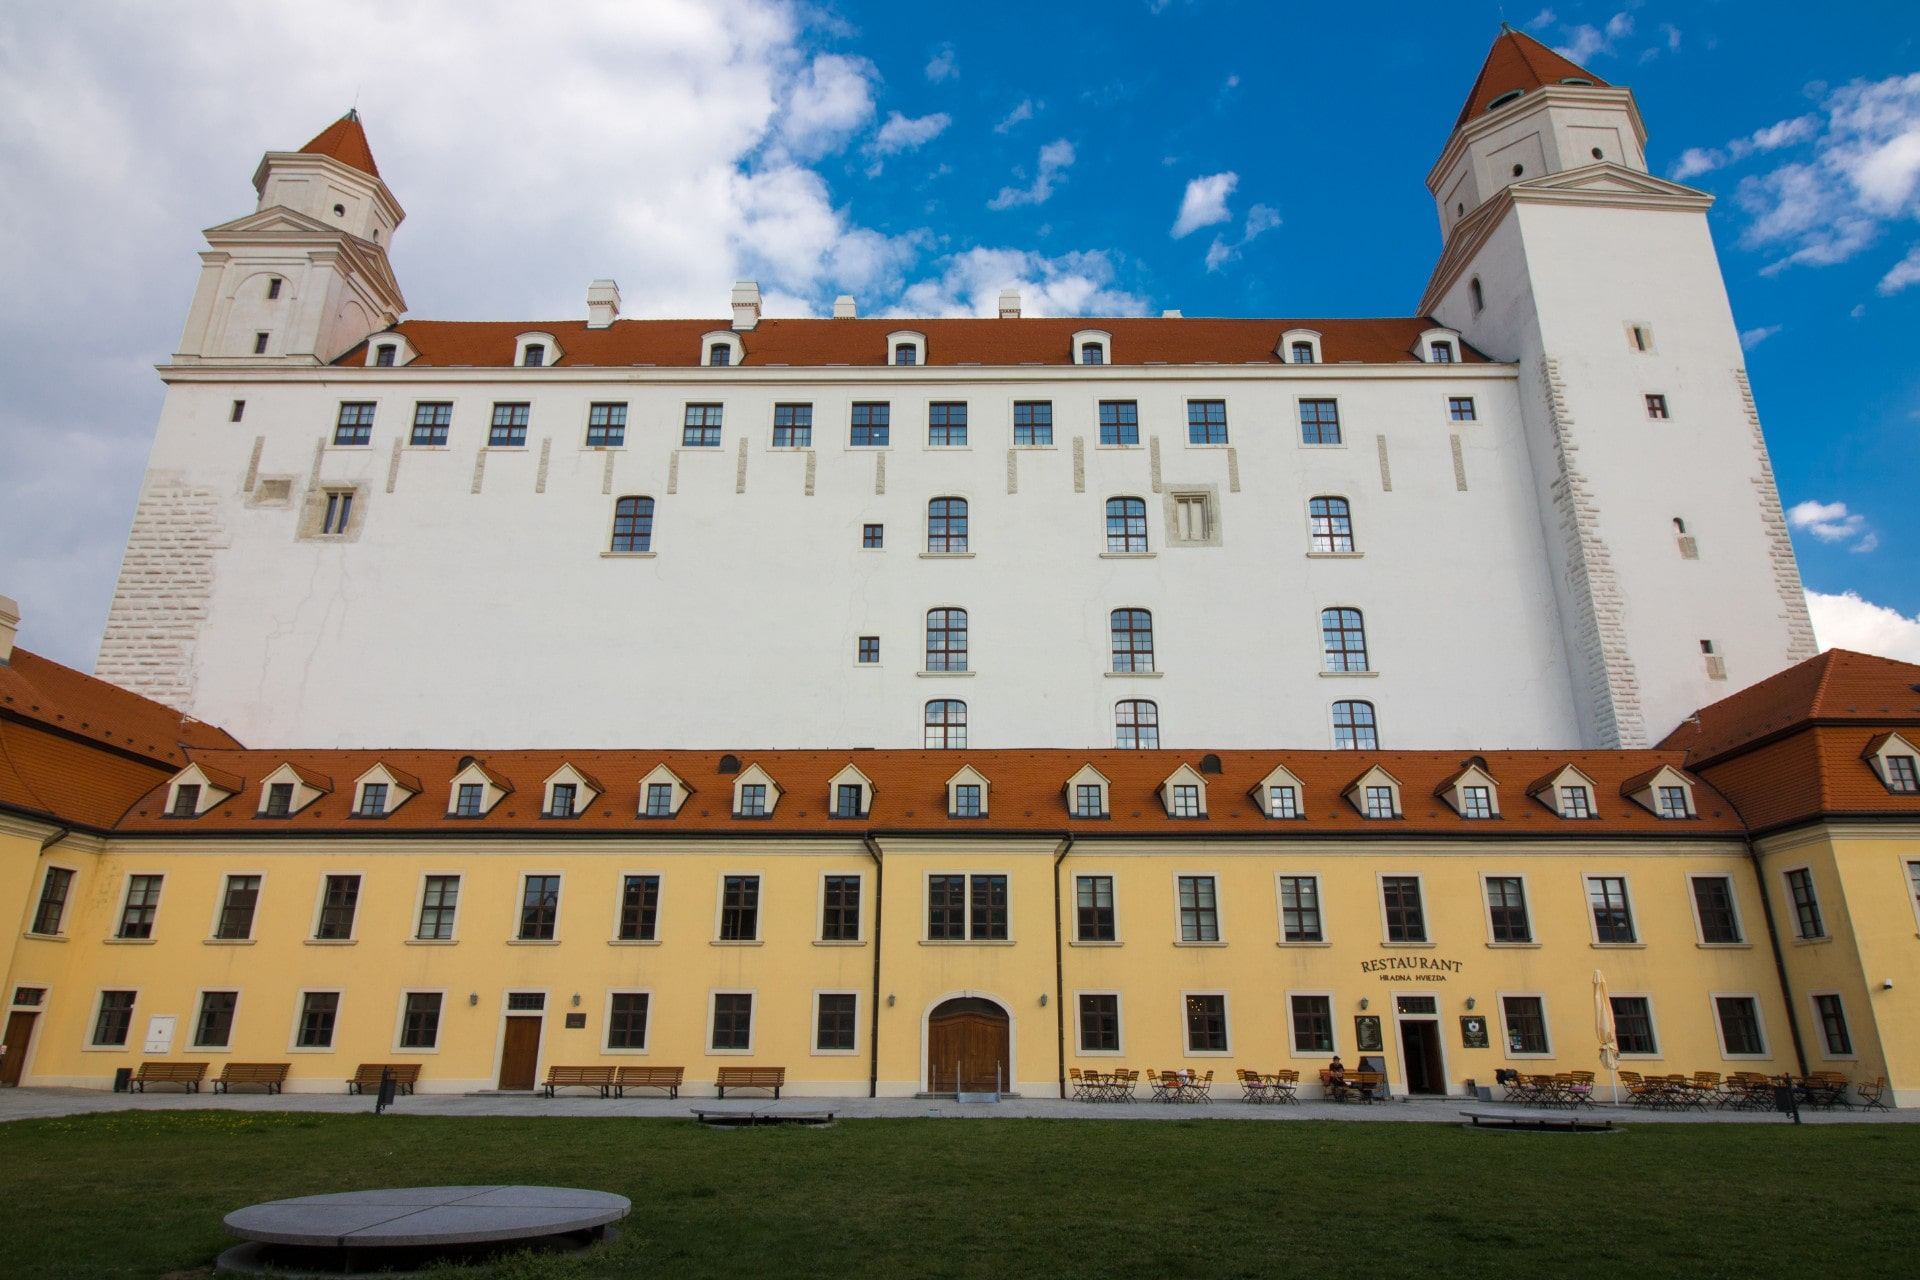 colourful-european-castle-with-a-yellow-and-white-exterior-and-orange-roofs-with-a-green-lawn-in-front-and-blue-skies-behind-bratislava-castle-one-day-in-bratislava